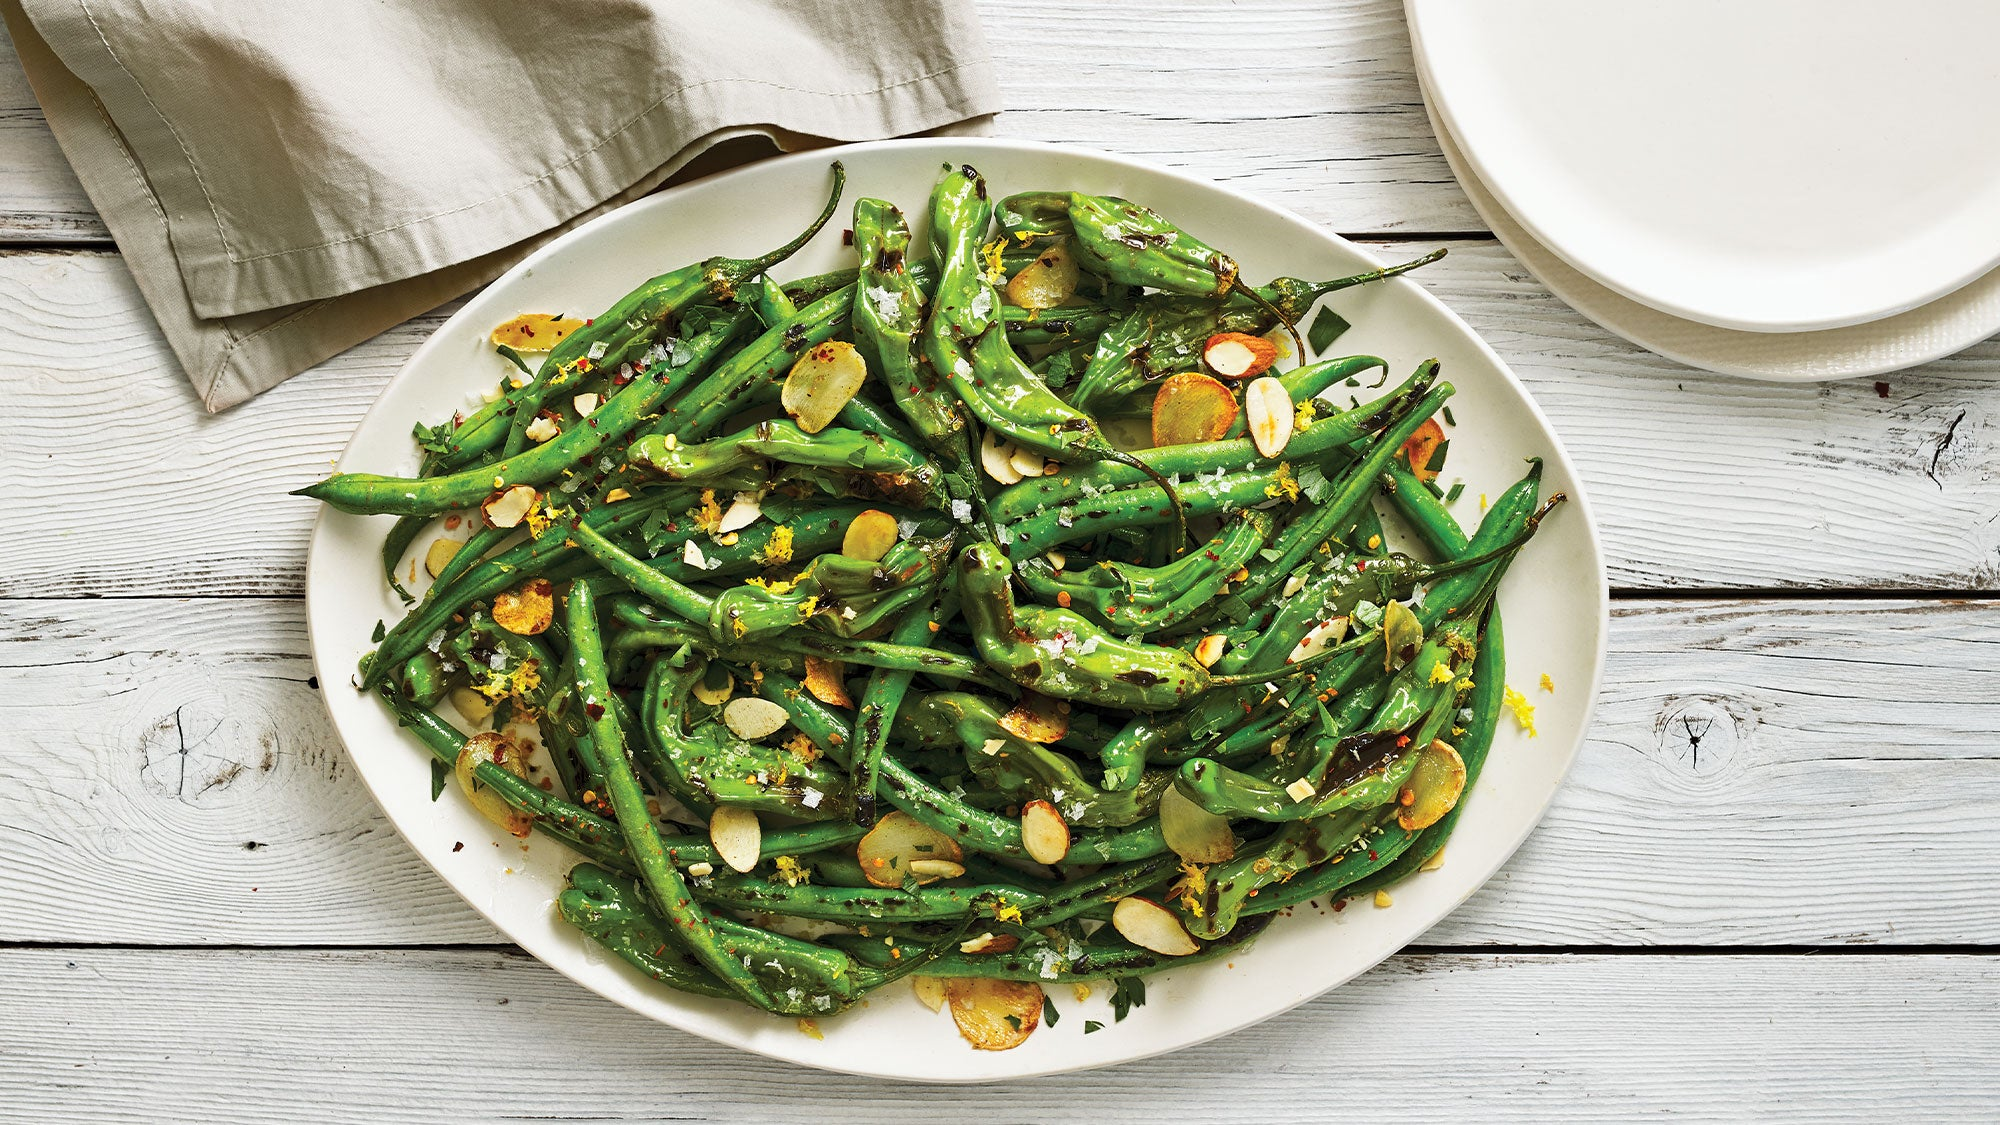 Blistered Green Beans & Shishito Peppers recipe